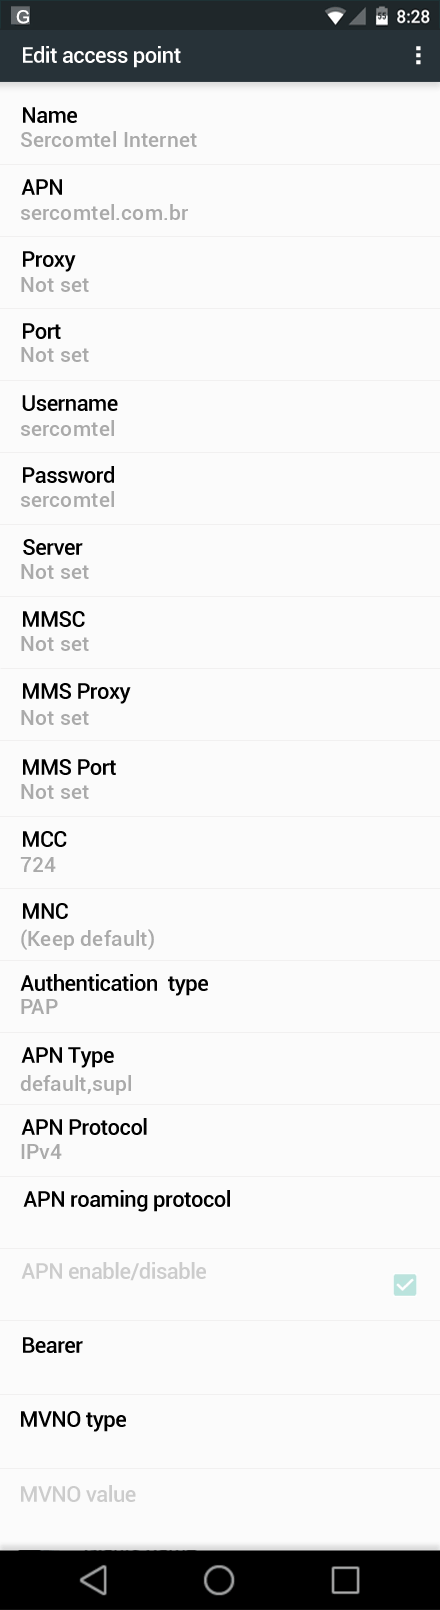 Sercomtel Internet APN settings for Android Marshmallow screenshot